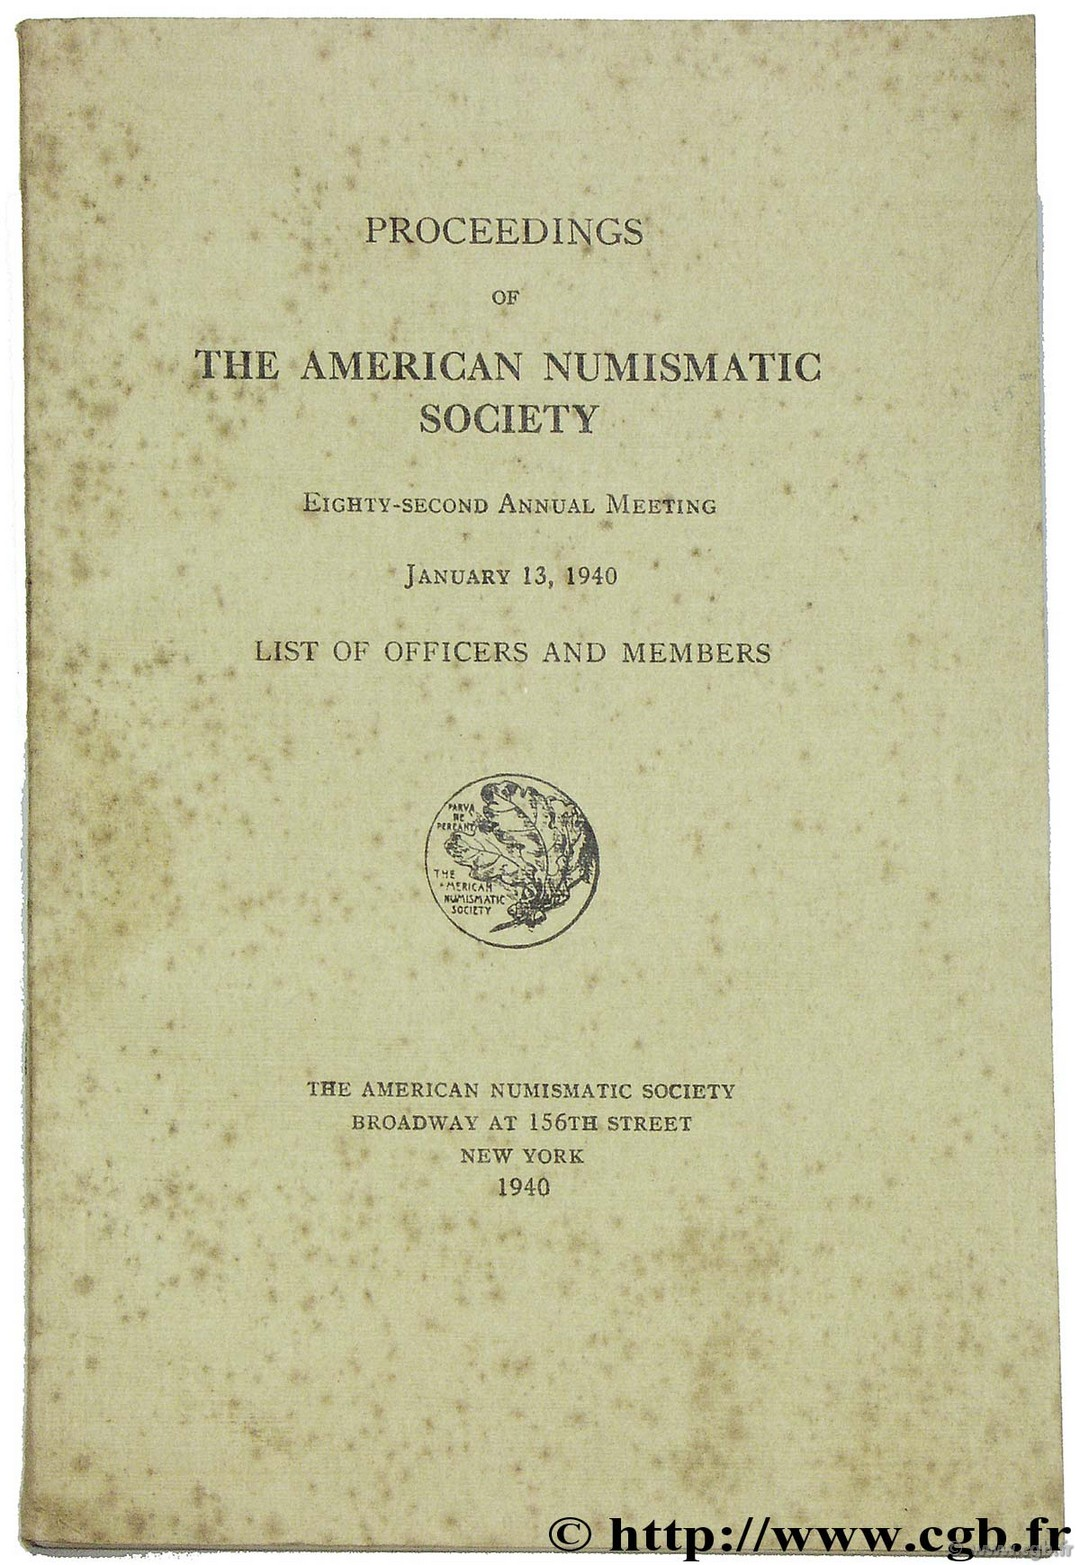 Proceendings of the american numismatic society eighty-second annual meeting